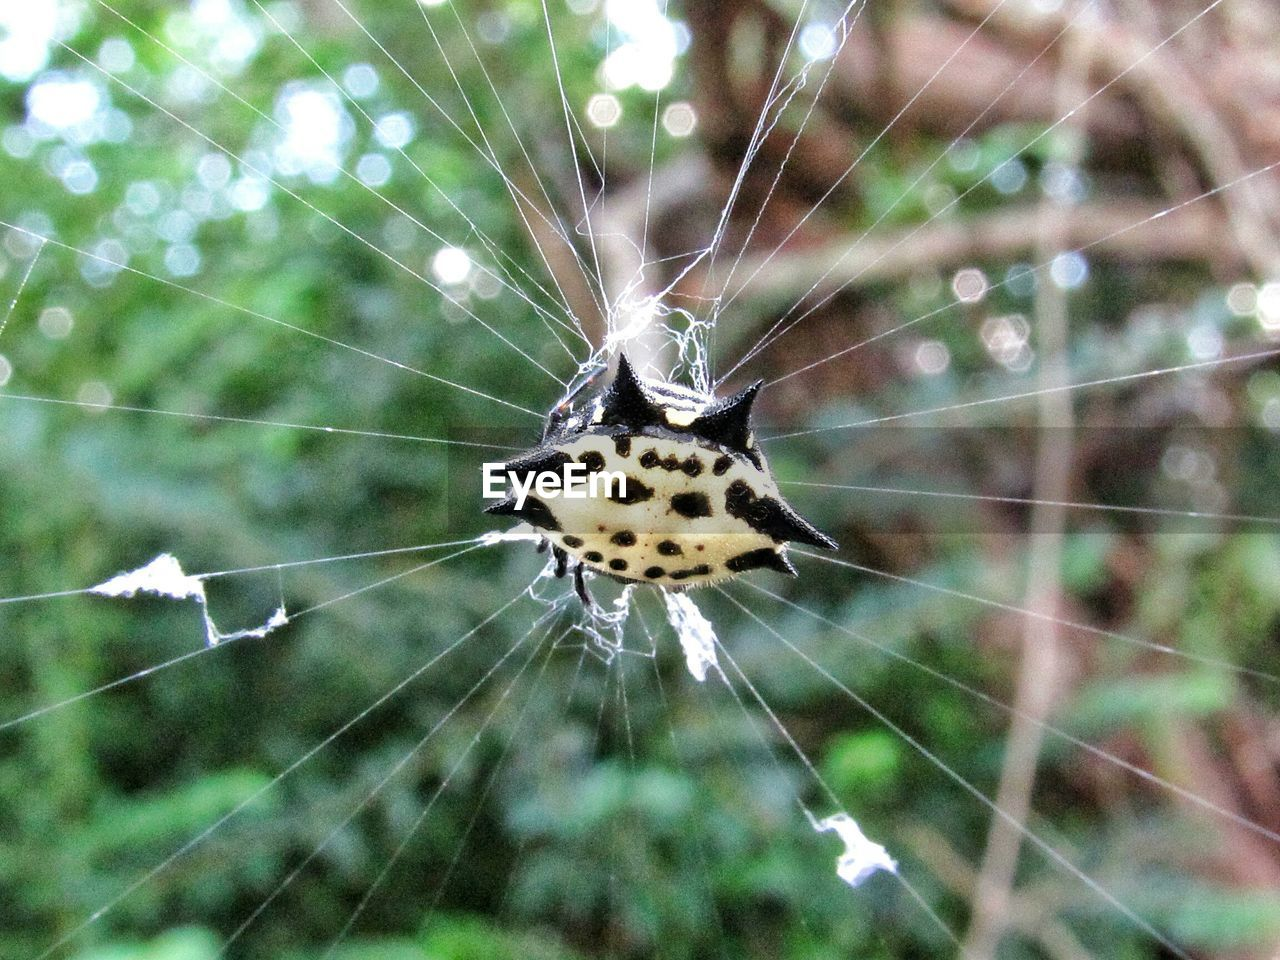 spider web, one animal, fragility, animal themes, animals in the wild, animal wildlife, close-up, animal, focus on foreground, invertebrate, vulnerability, insect, nature, spider, arachnid, day, arthropod, beauty in nature, no people, natural pattern, outdoors, web, complexity